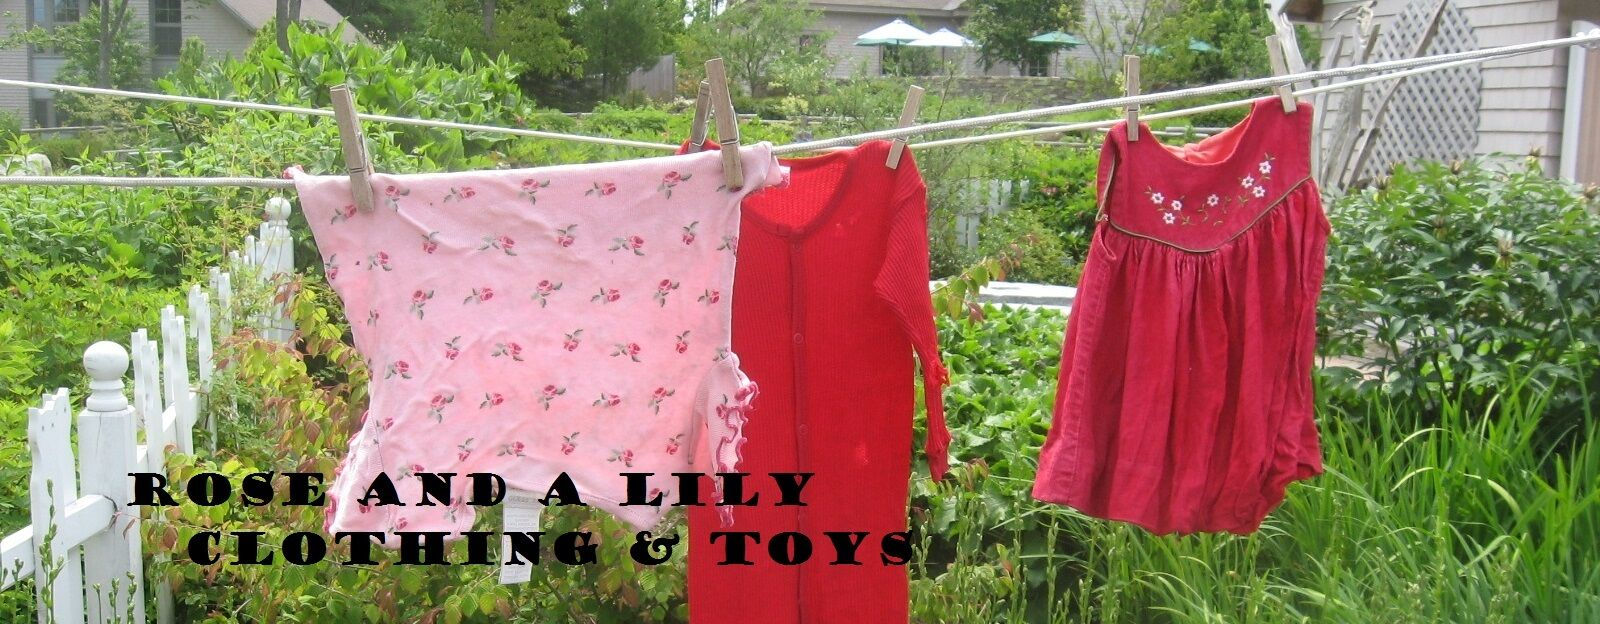 Rose & A Lily Clothing and Toys